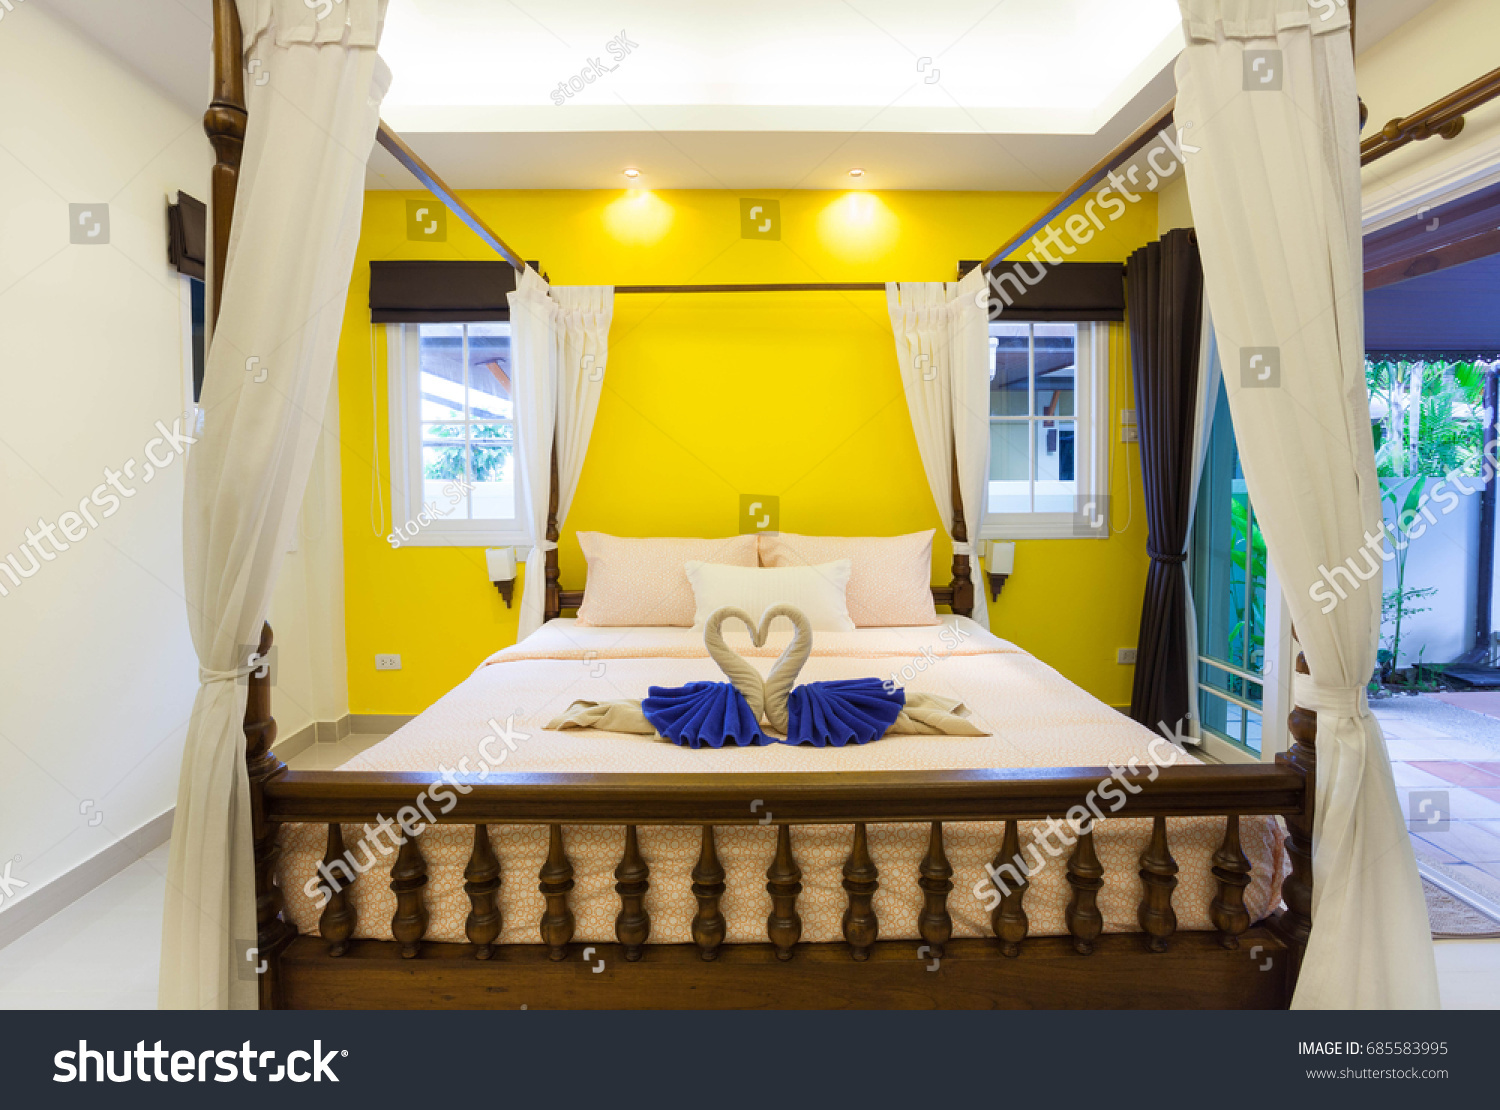 House design yellow - Interior Design Of Master Bedroom In Luxury Cozy House It Feature Yellow Wall Raised